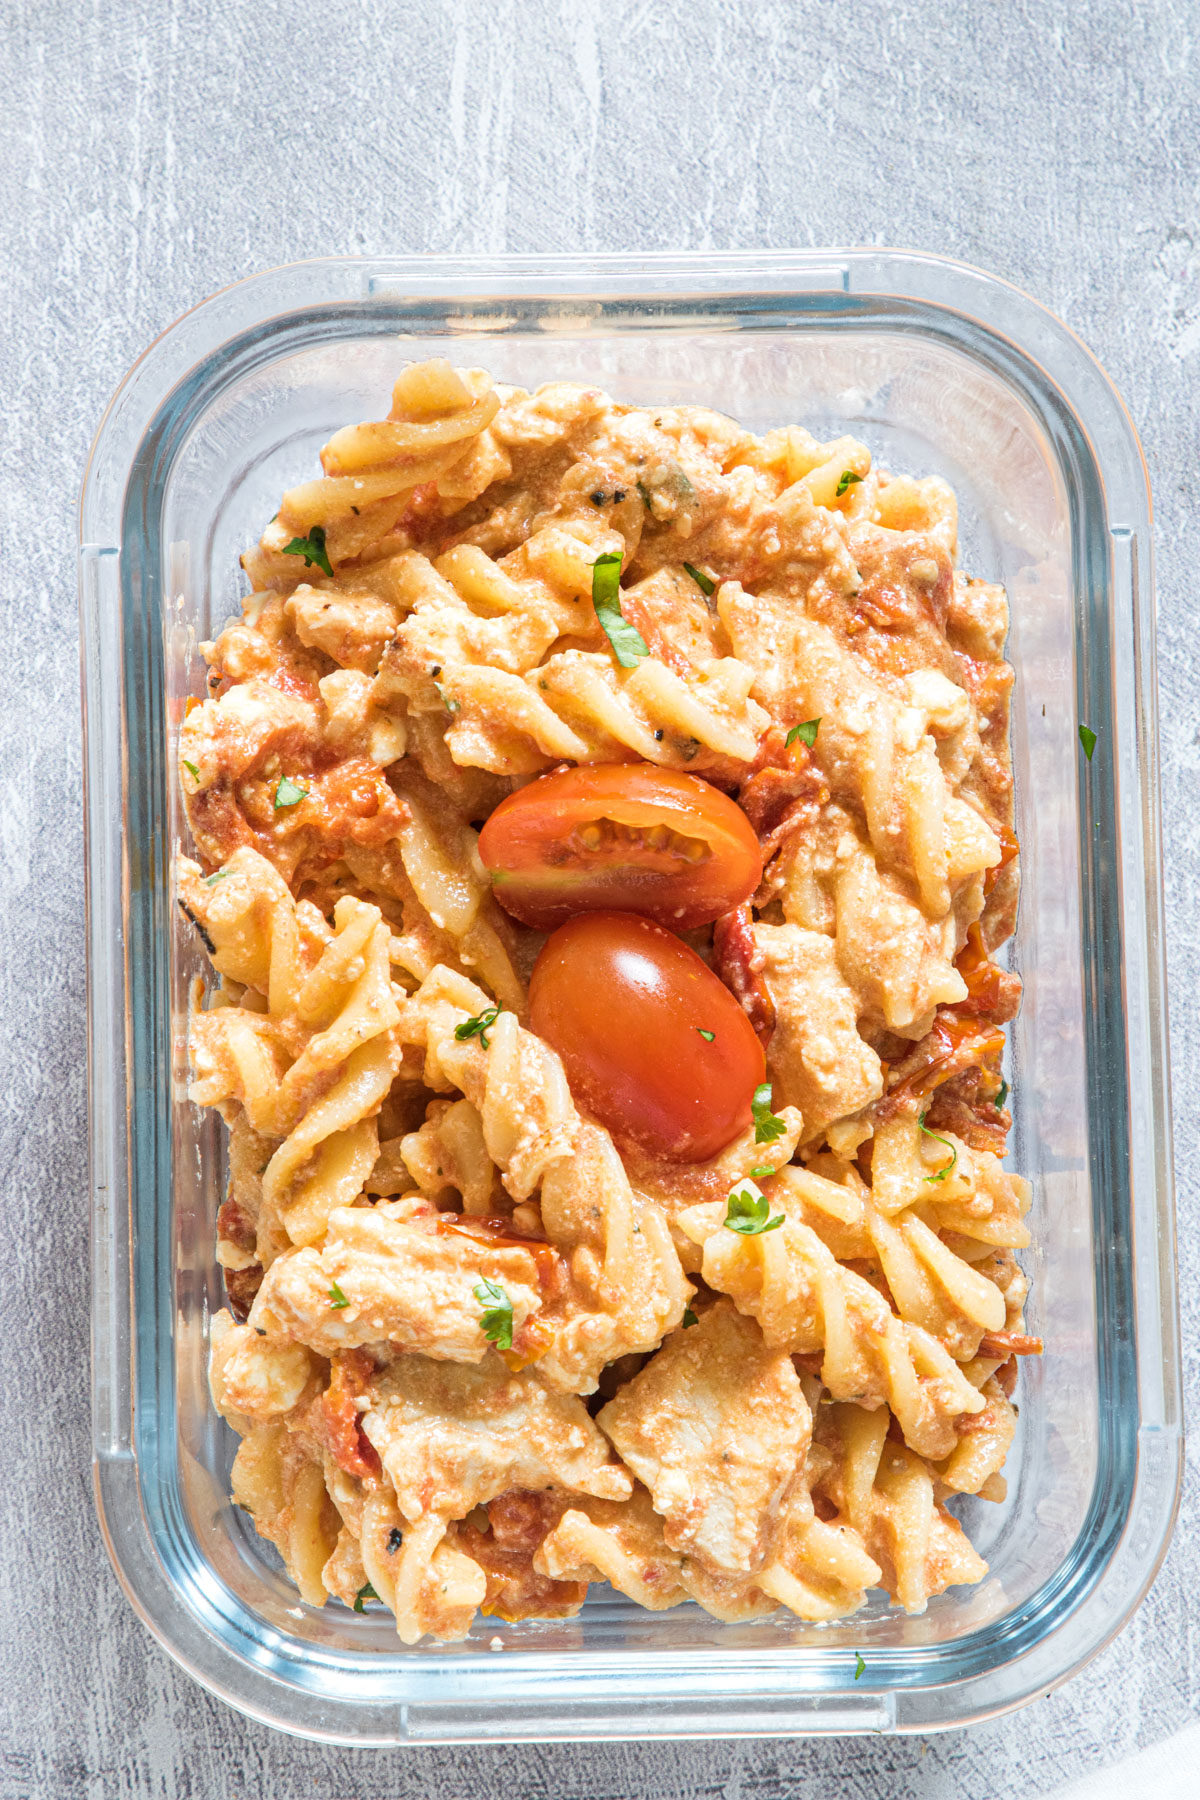 top down view of a serving of buffalo chicken baked feta pasta in a glass food storage container